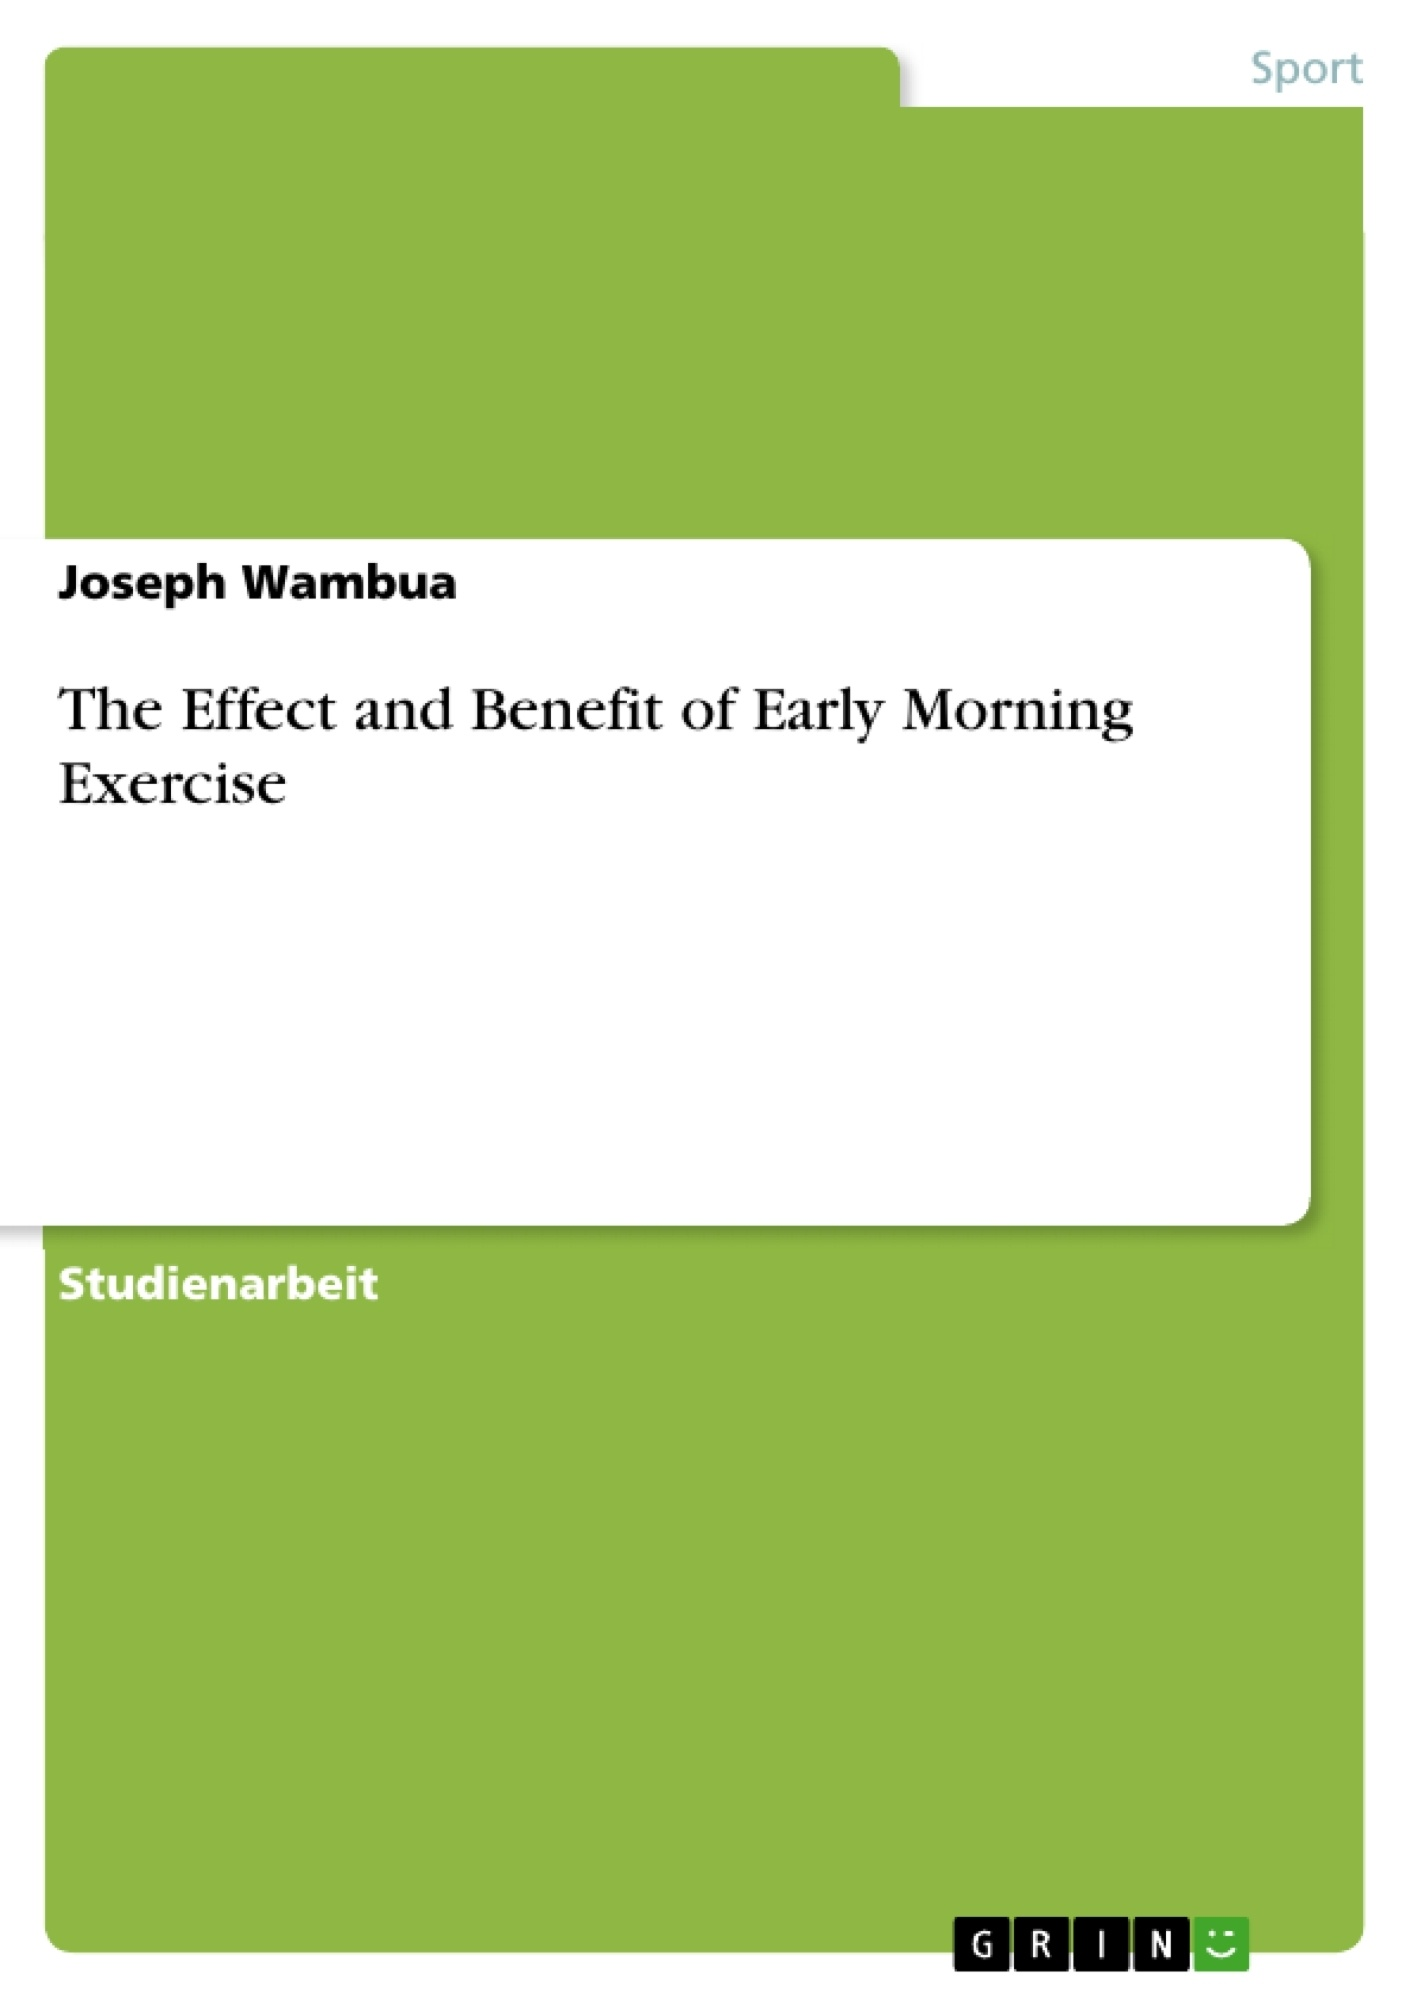 Titel: The Effect and Benefit of Early Morning Exercise